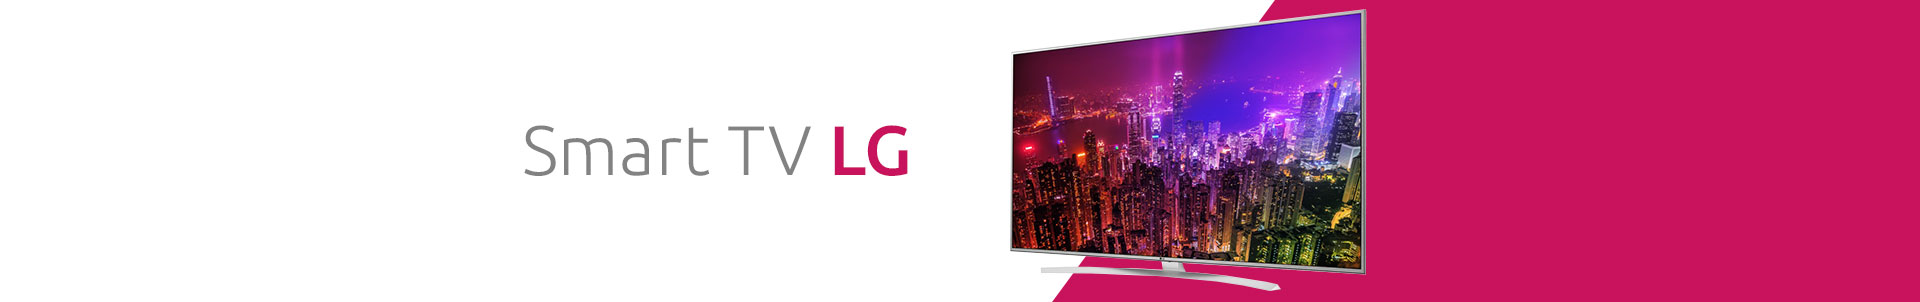 Smart tv lg